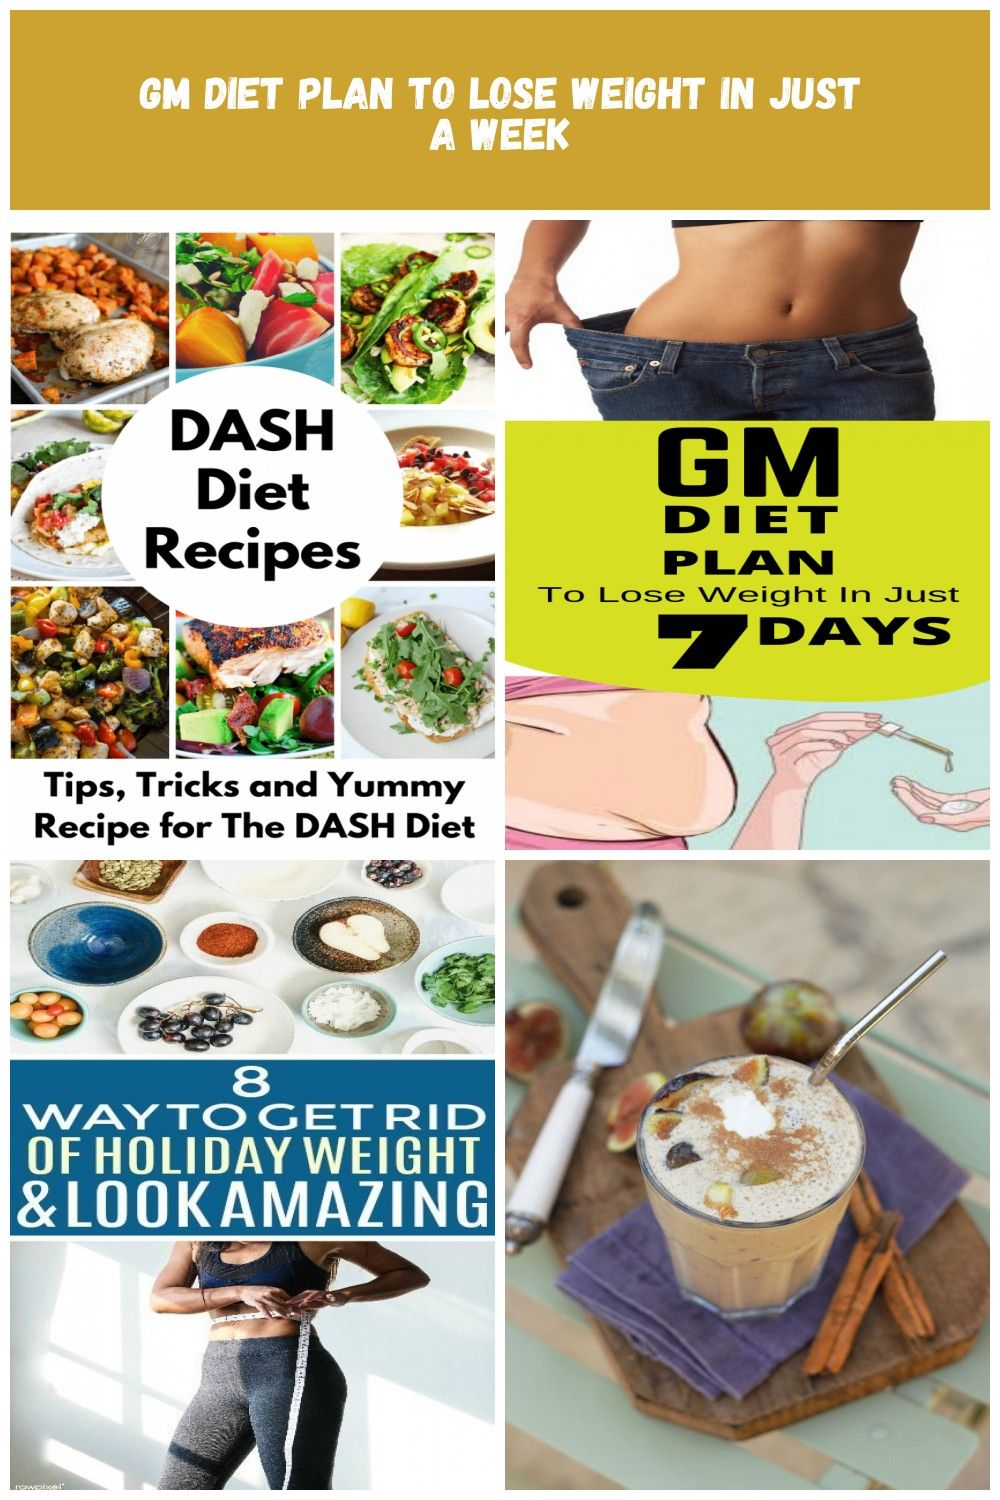 Tips, Tricks and Yummy Recipes for The DASH Diet smoothie